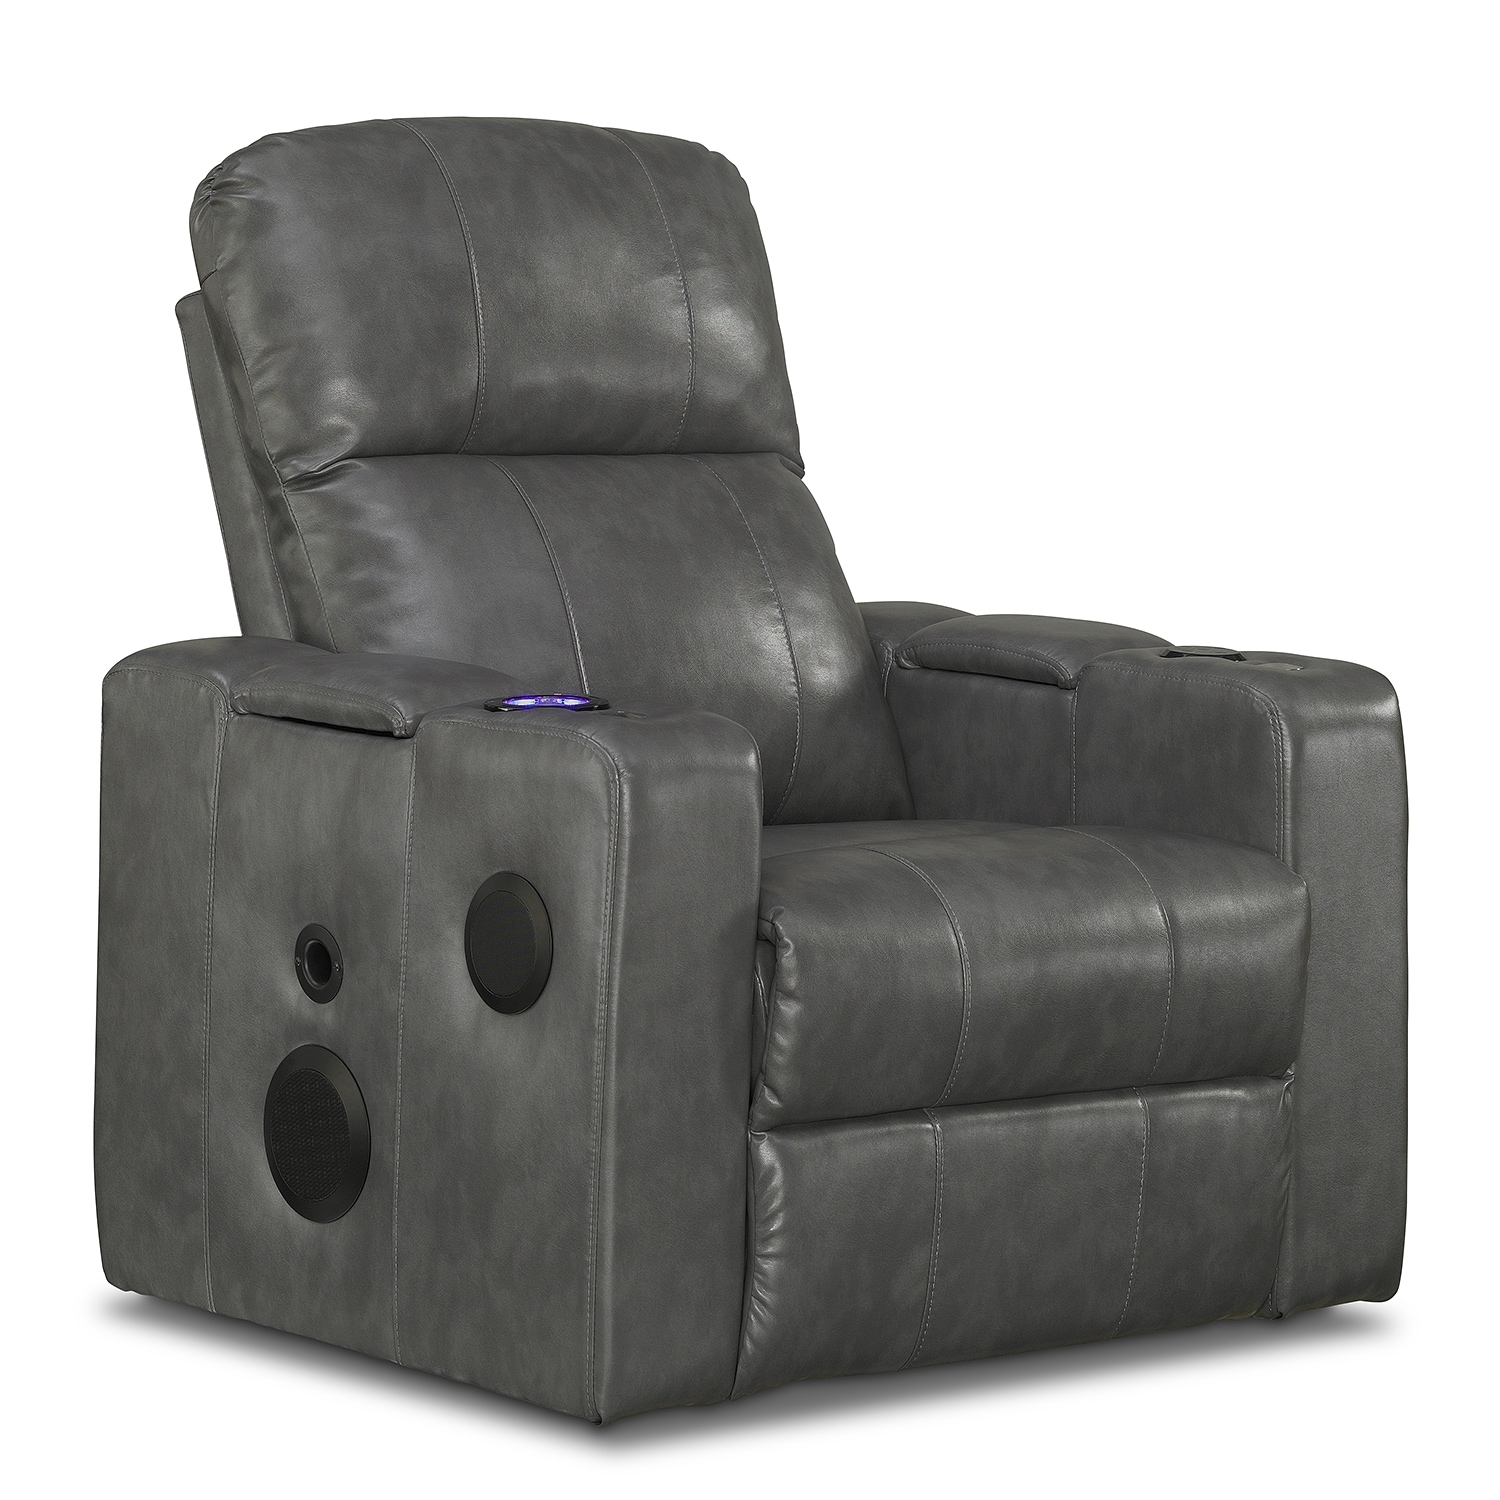 Living Room Furniture - Apollo Home Theater Recliner